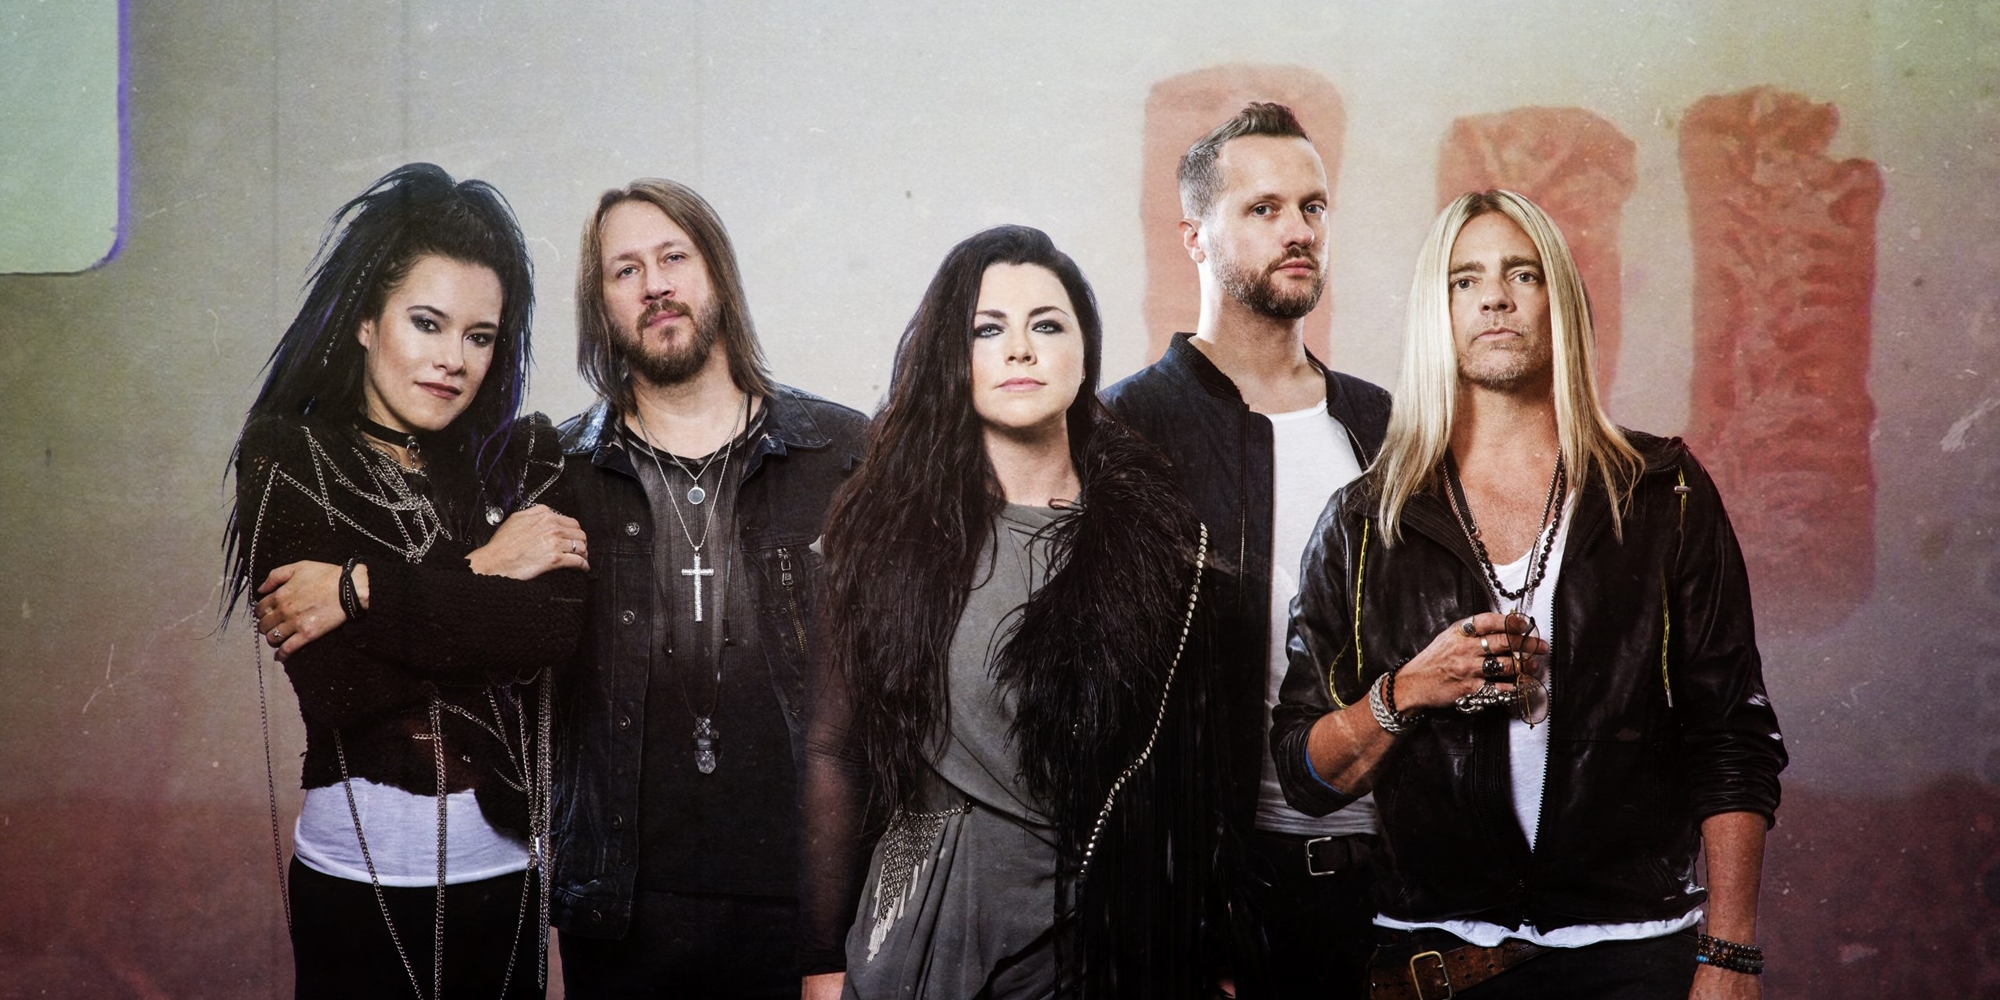 evanescence clip wasted on you album the bitter truth